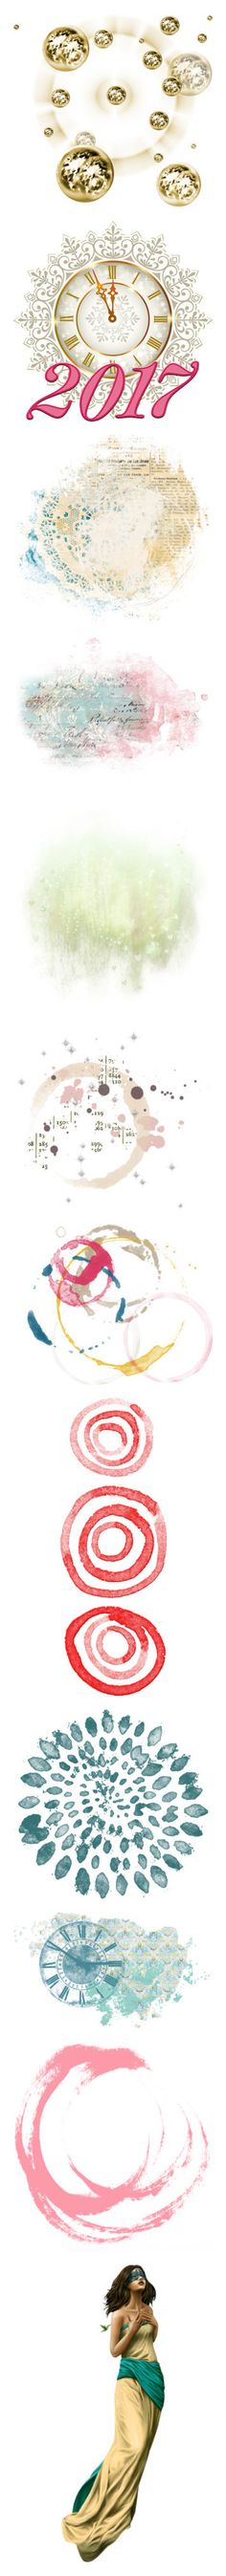 """""""art"""" by moon-child-dreams ❤ liked on Polyvore featuring effects, backgrounds, bubbles, gold, filler, embellishments, circle, detail, text and saying"""